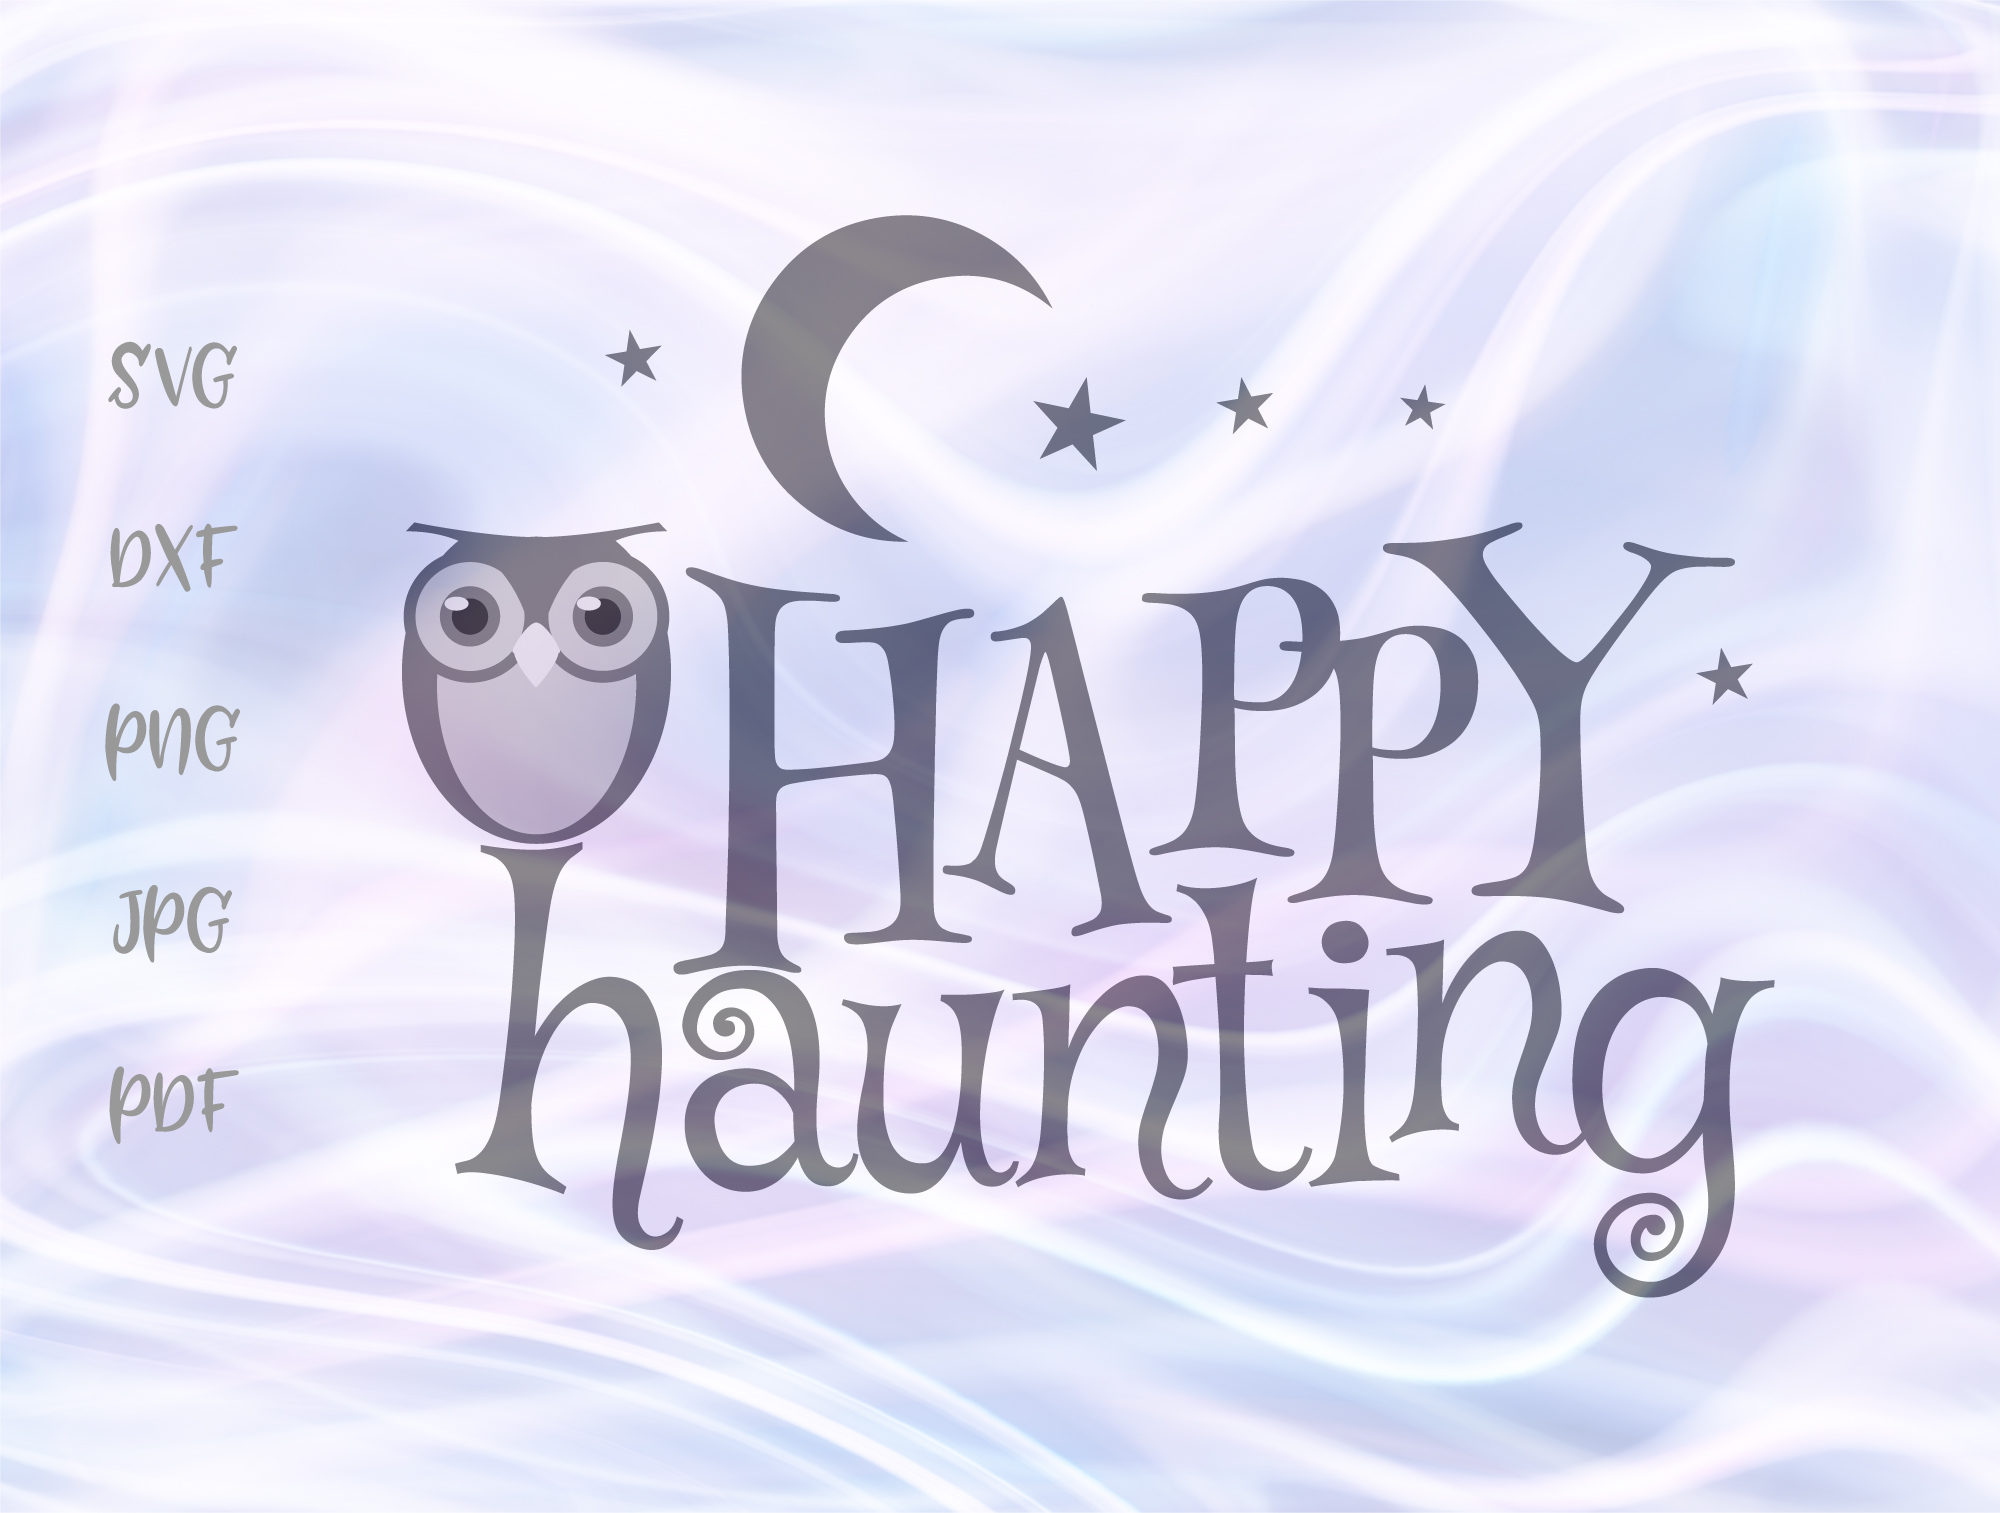 Download Free Happy Halloween Owl Moon Haunting Graphic By Digitals By Hanna for Cricut Explore, Silhouette and other cutting machines.